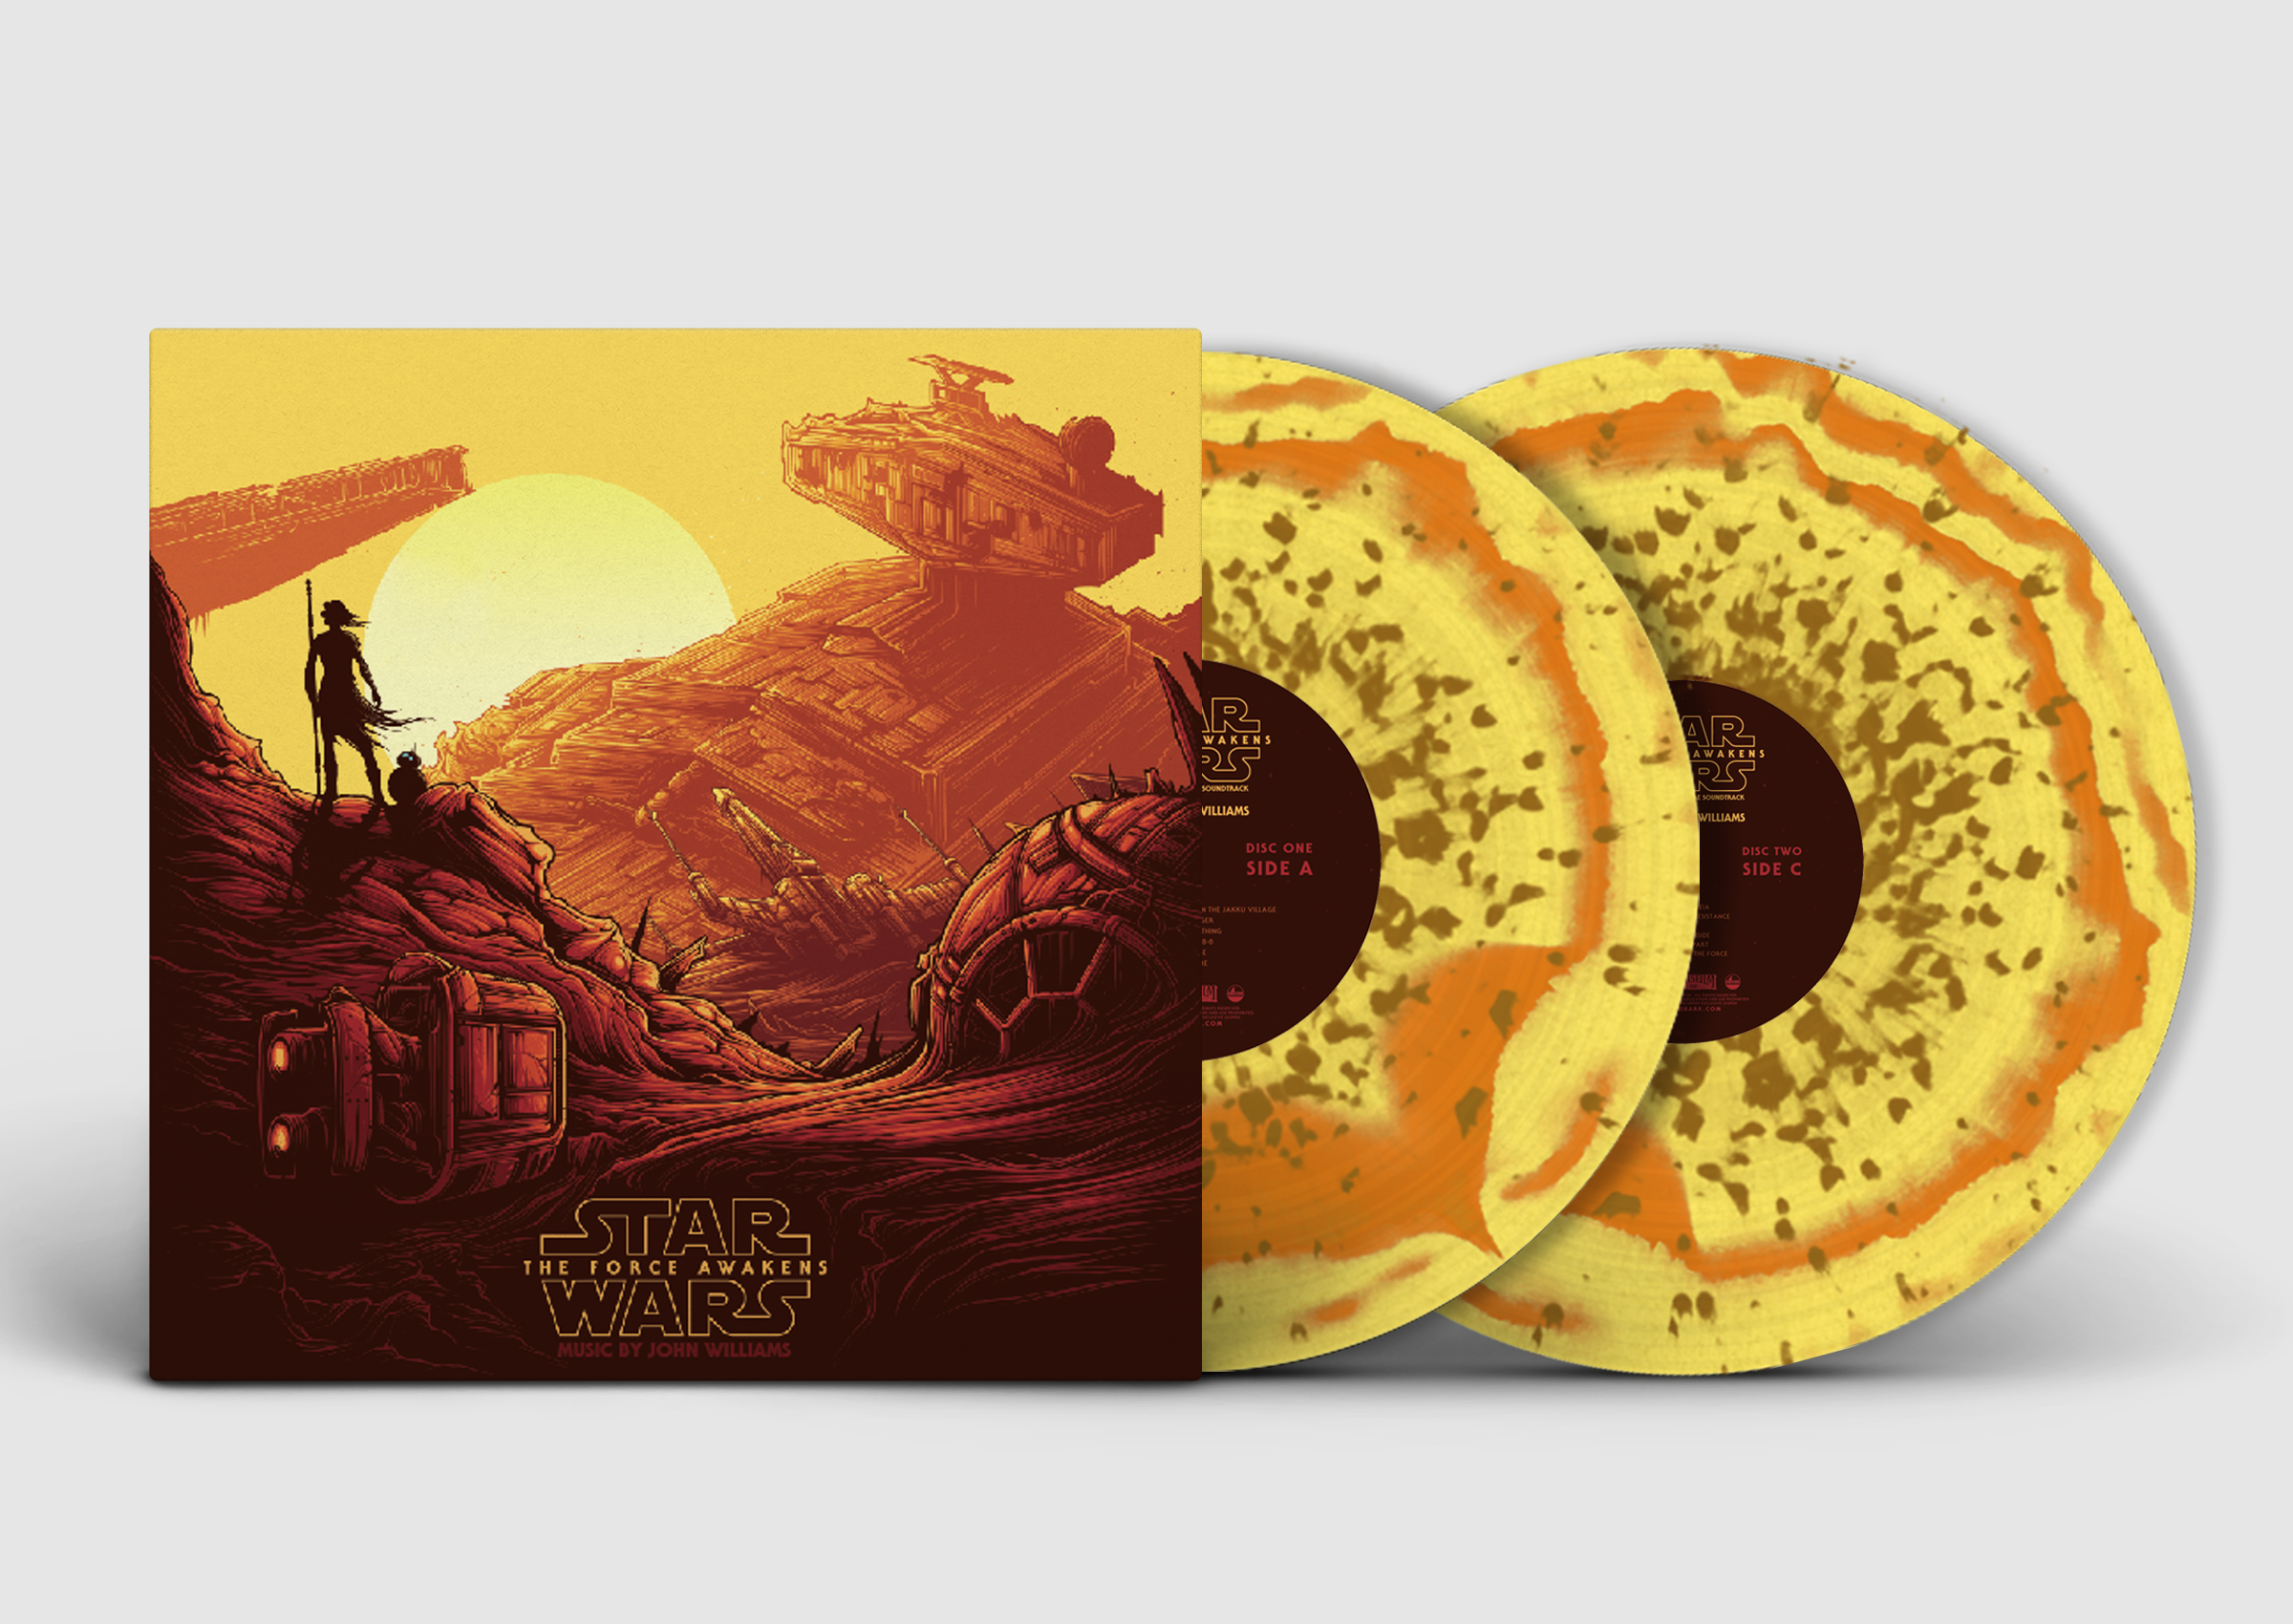 Star Wars Episode 7: The Force Awakens - Original Motion Picture Soundtrack (Collector's Edition)  REY